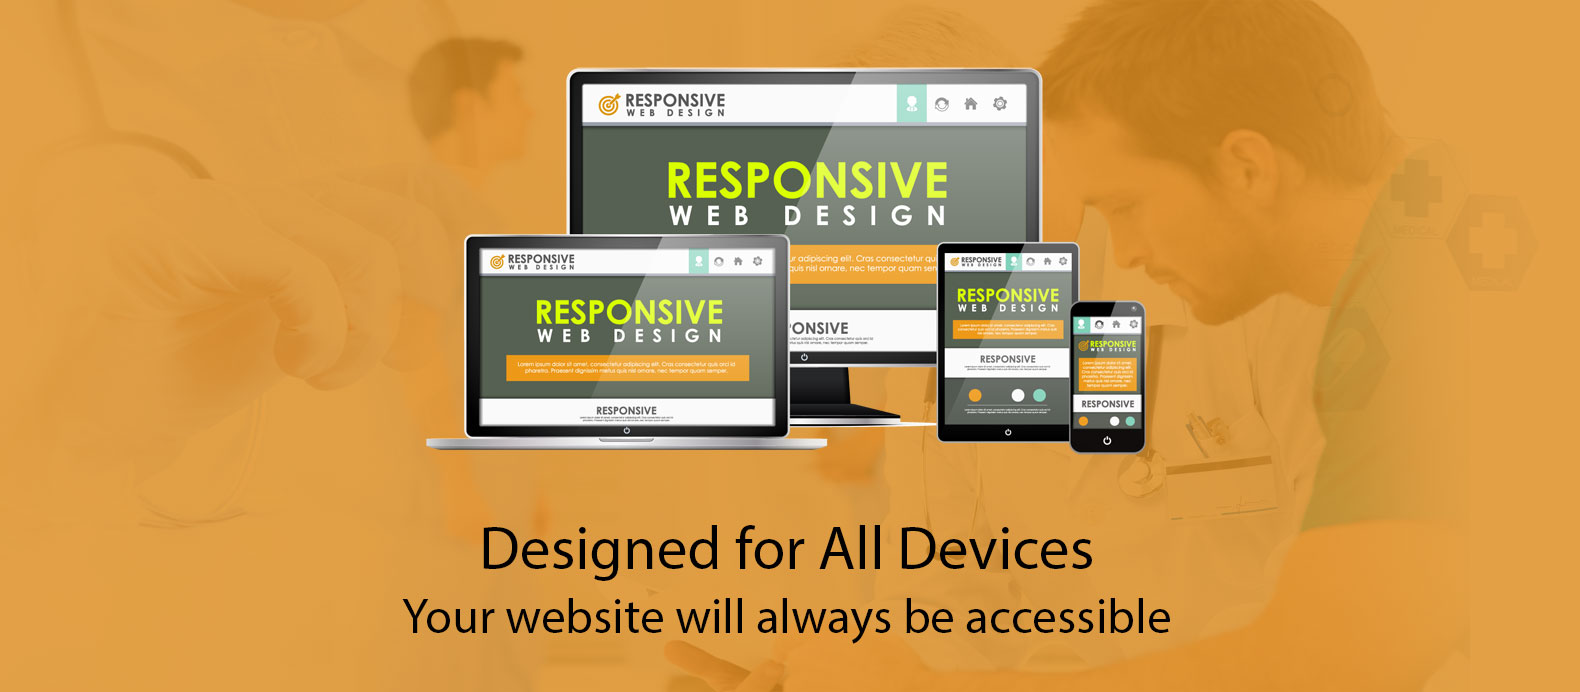 Designed for All Devices, Your website will always be accessible